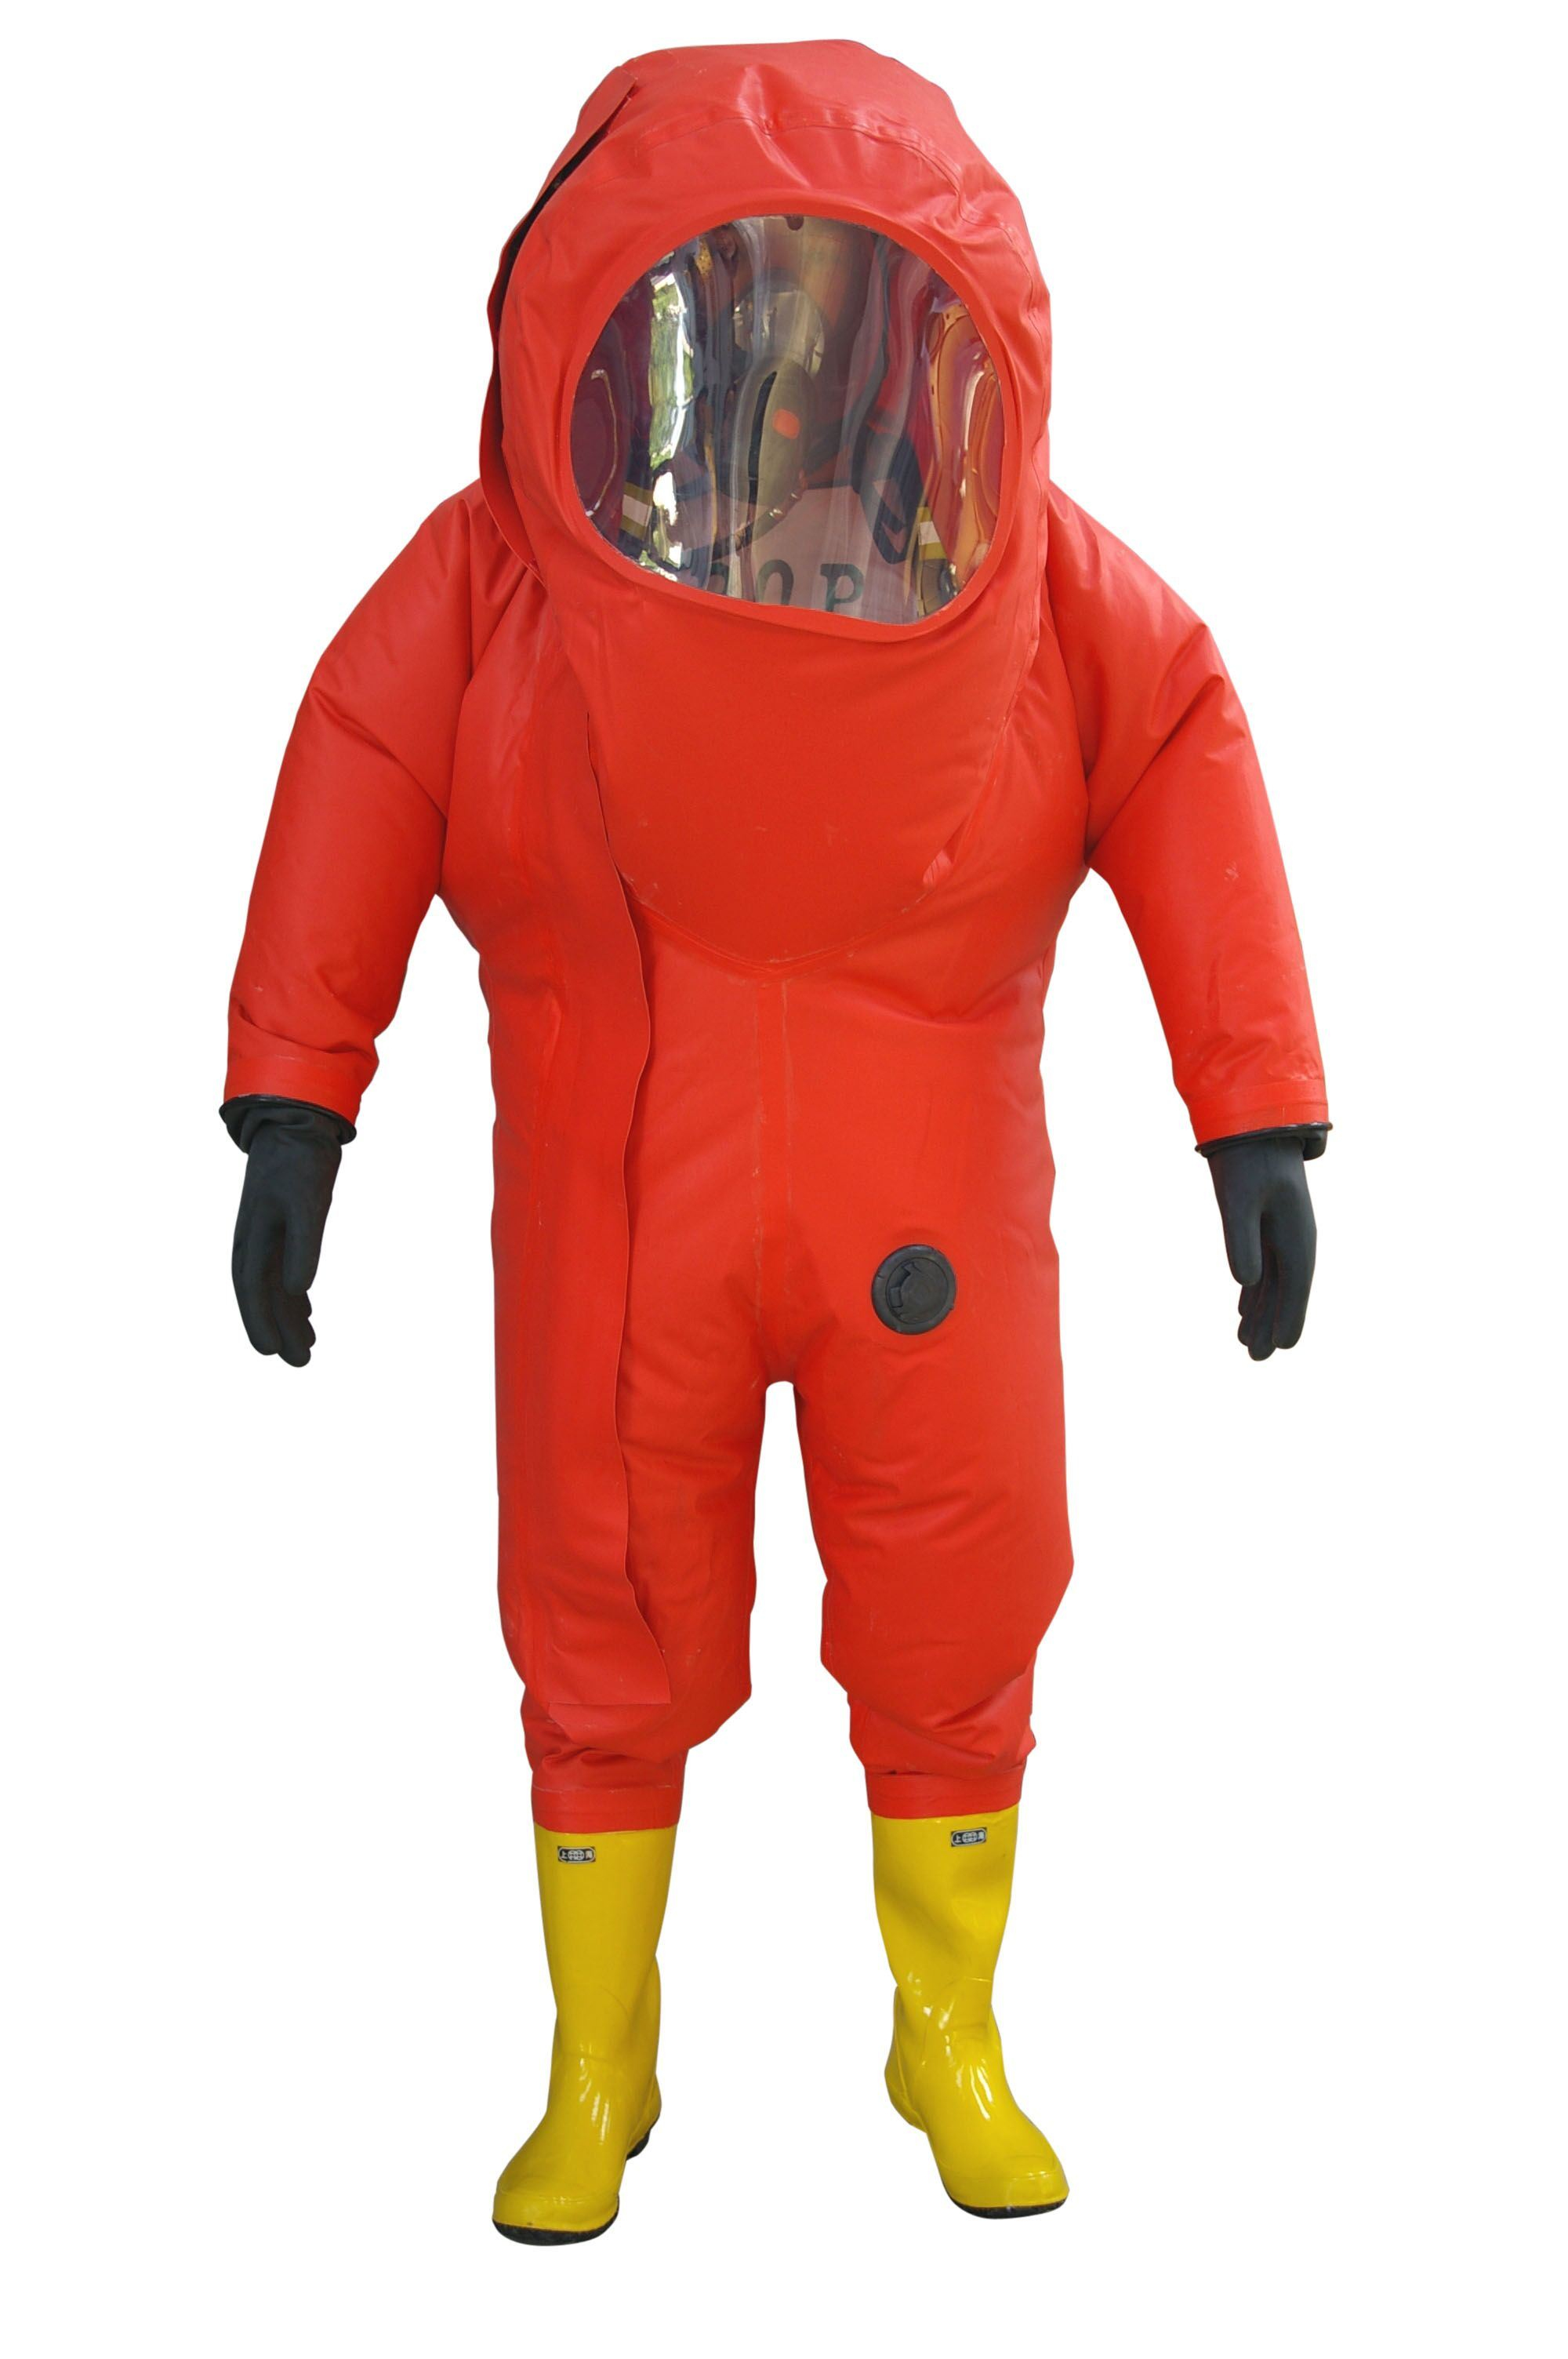 China Heavy Duty Type Chemical Protective Suits For Sale China Protective Body Suit Chemical Protective Suit